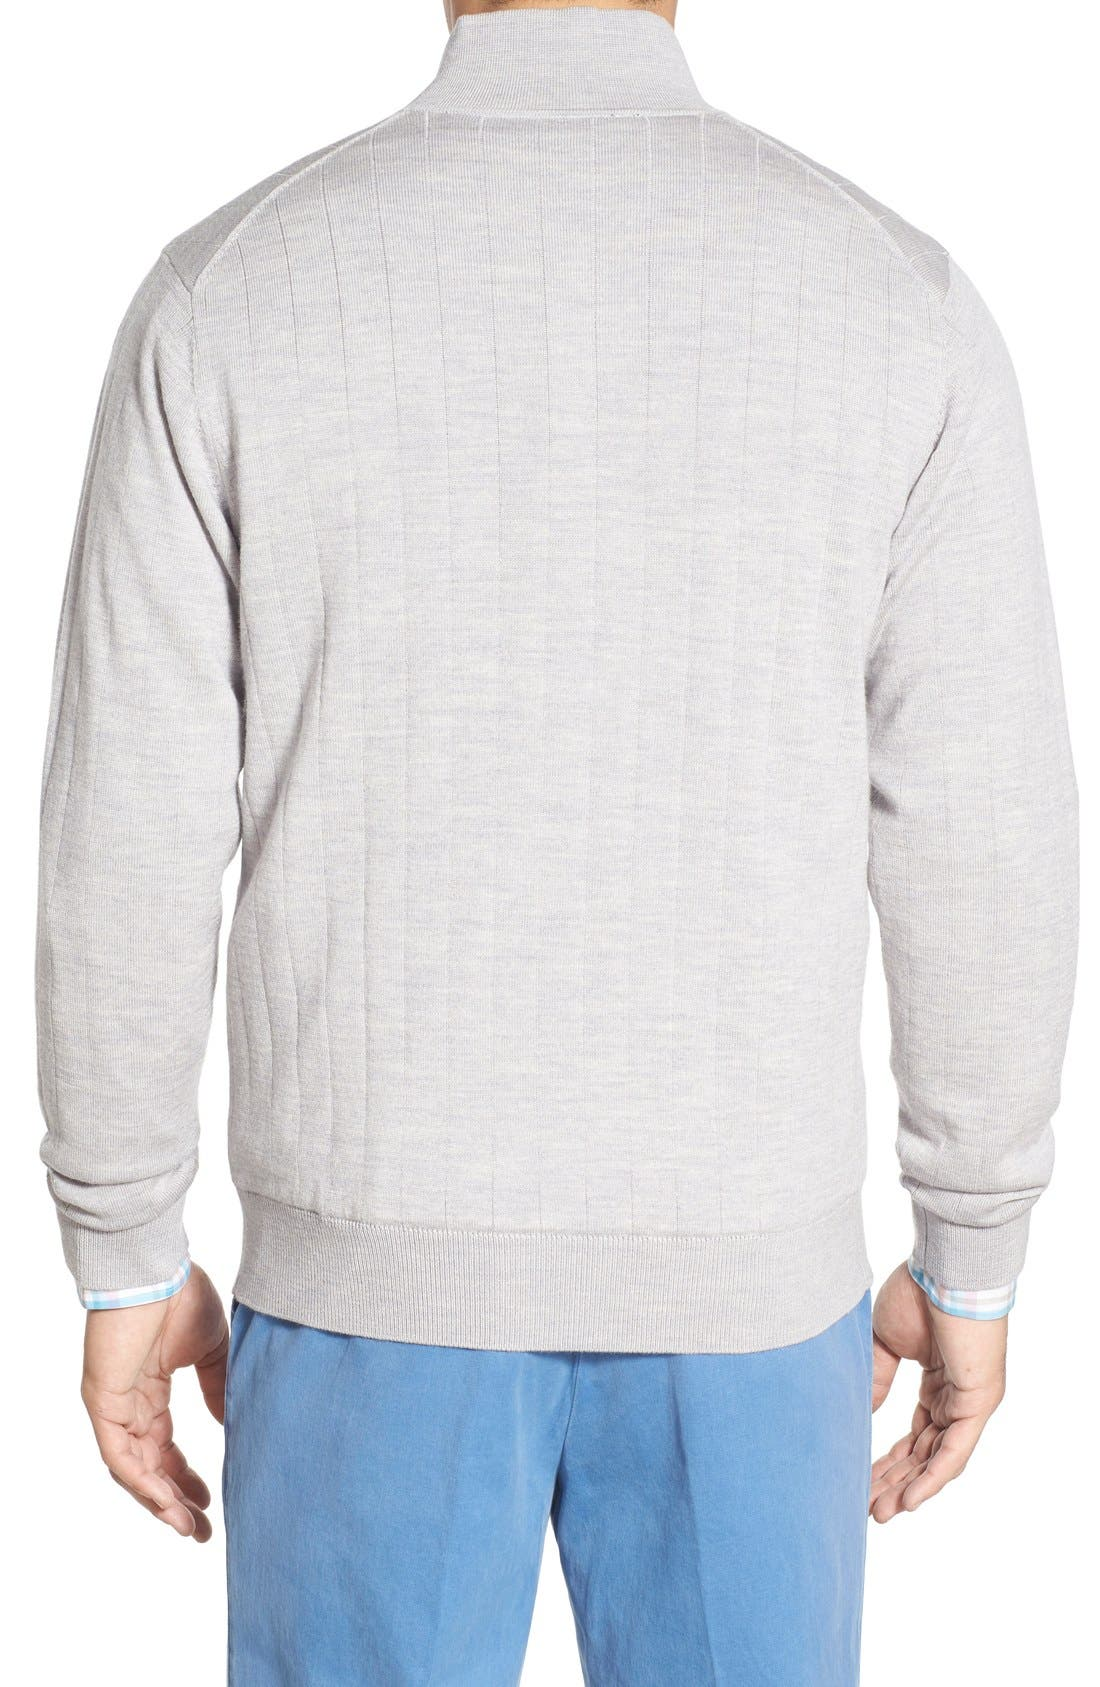 Windproof Merino Wool Quarter Zip Sweater,                             Alternate thumbnail 2, color,                             HEATHER GREY